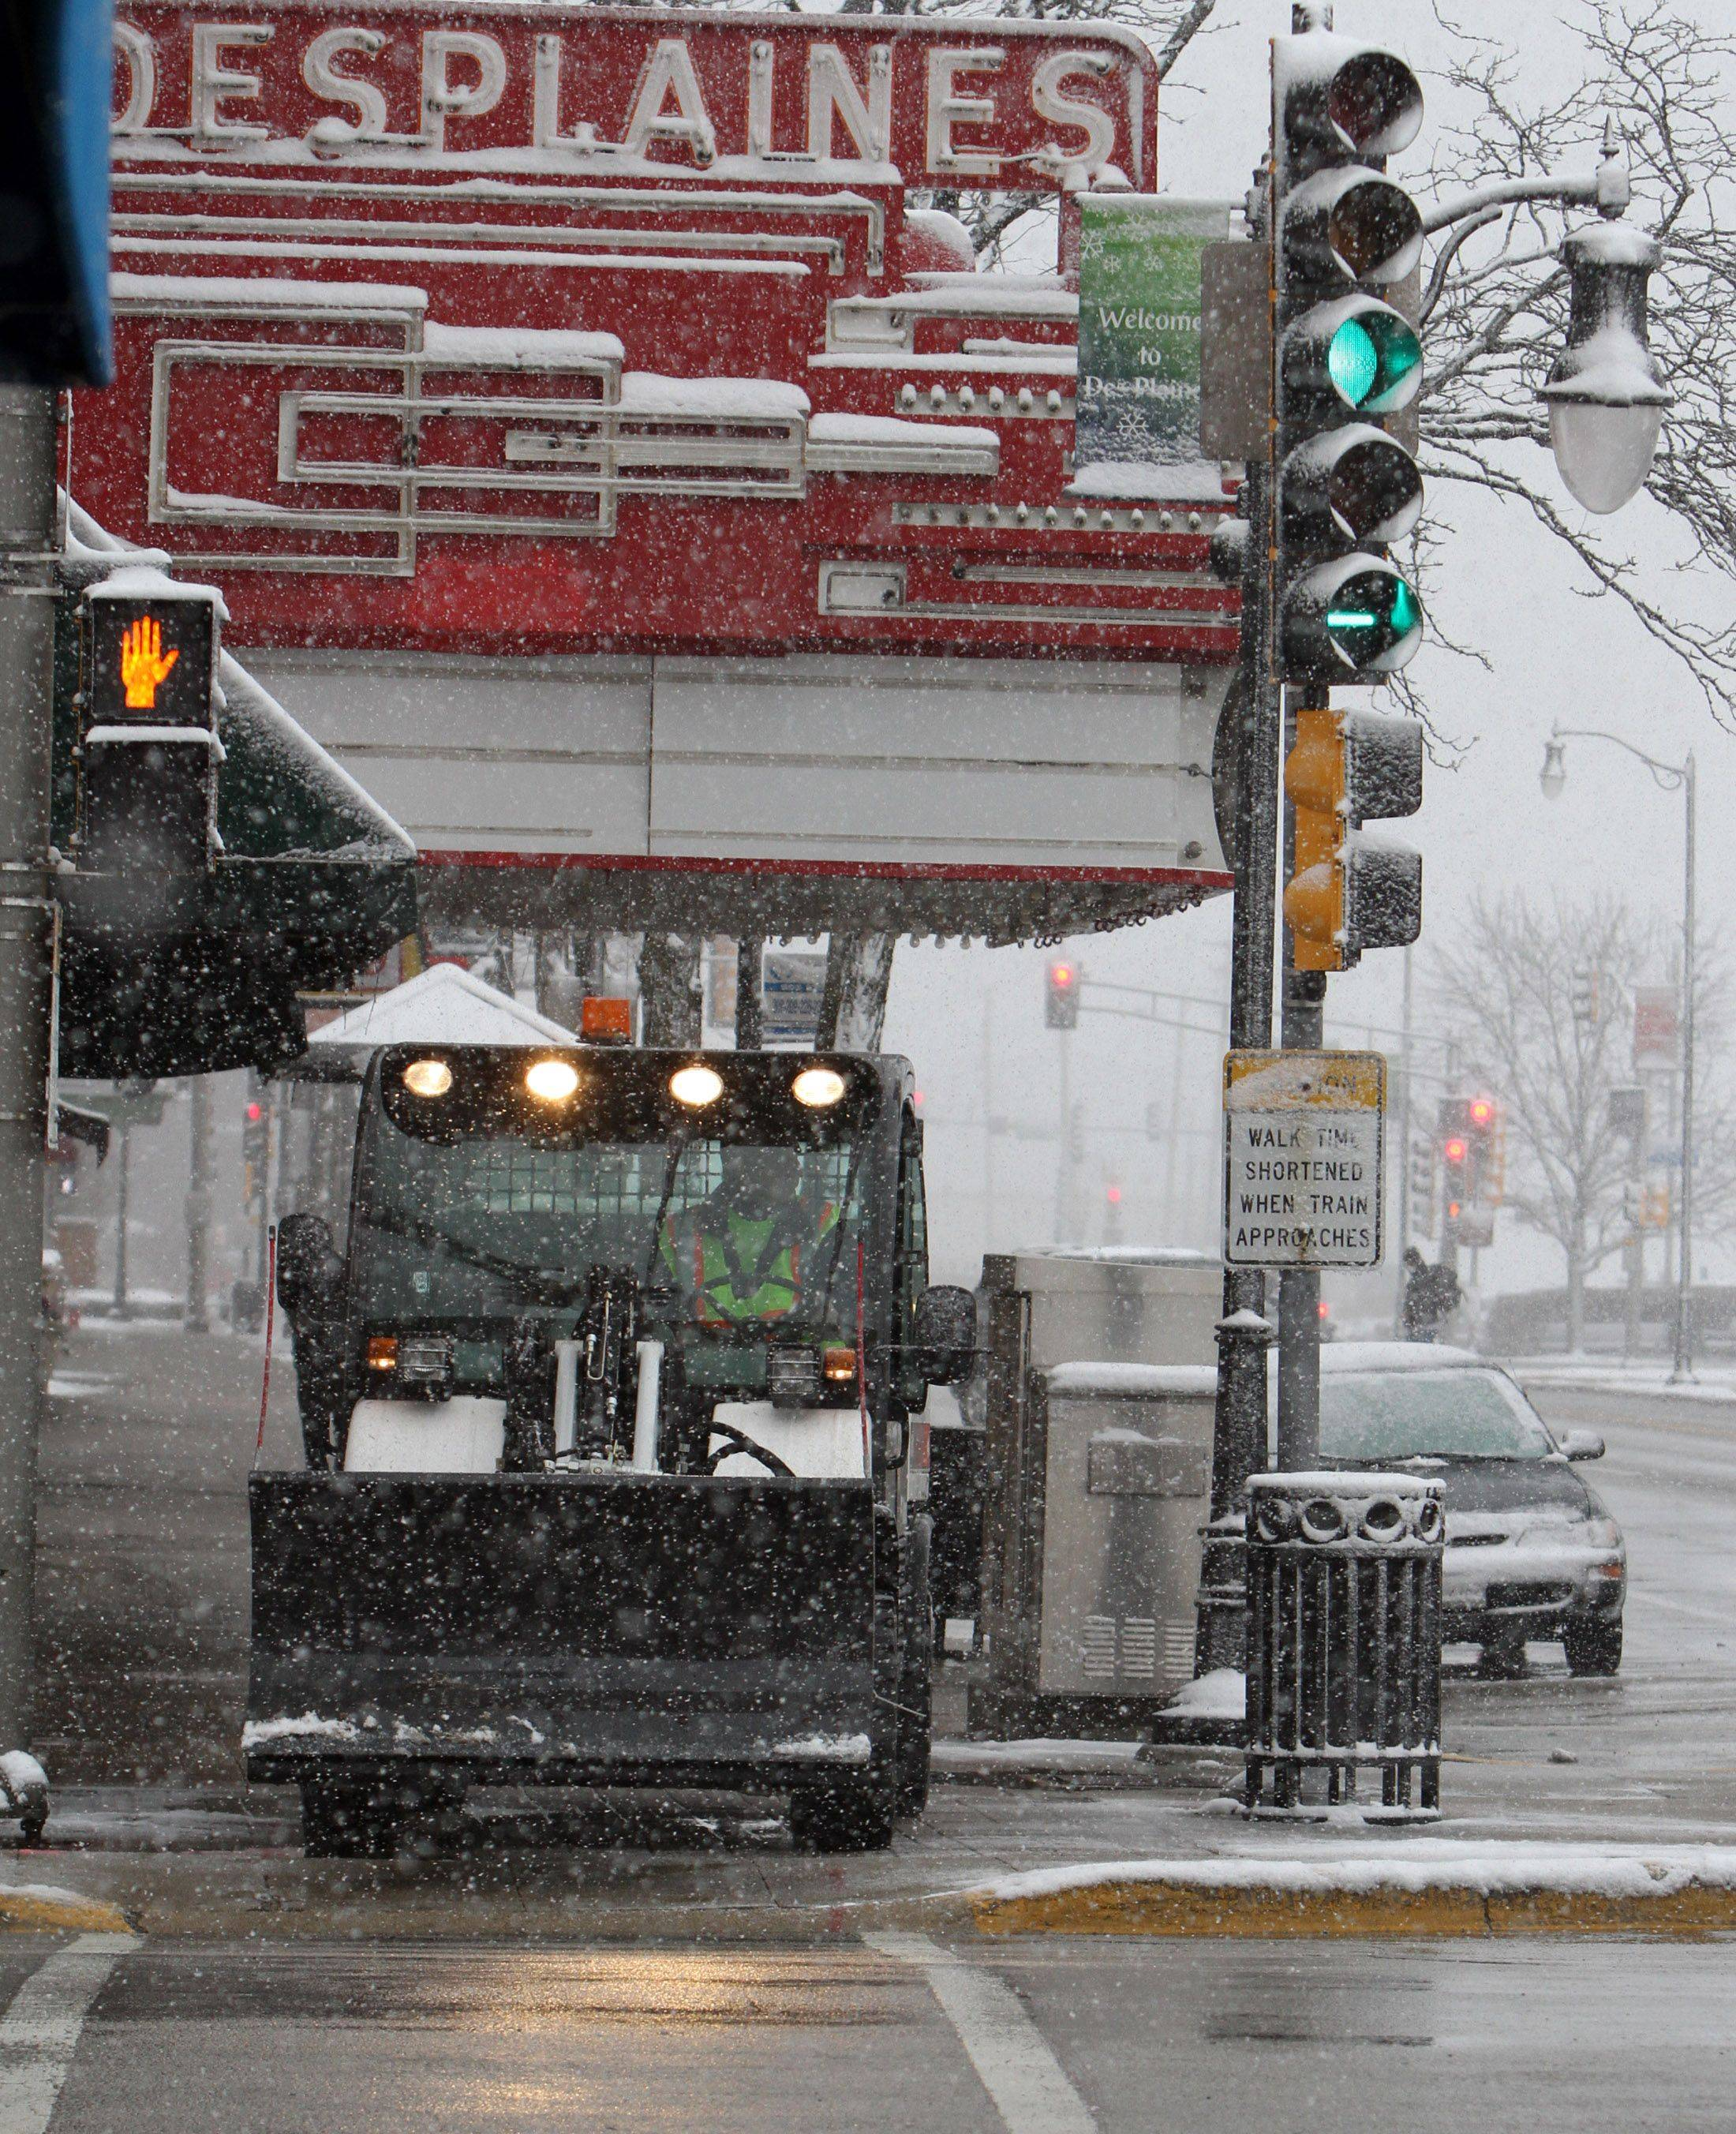 Vic Kamka with Des Plaines Public works plows the sidewalk along Northwest Highway.